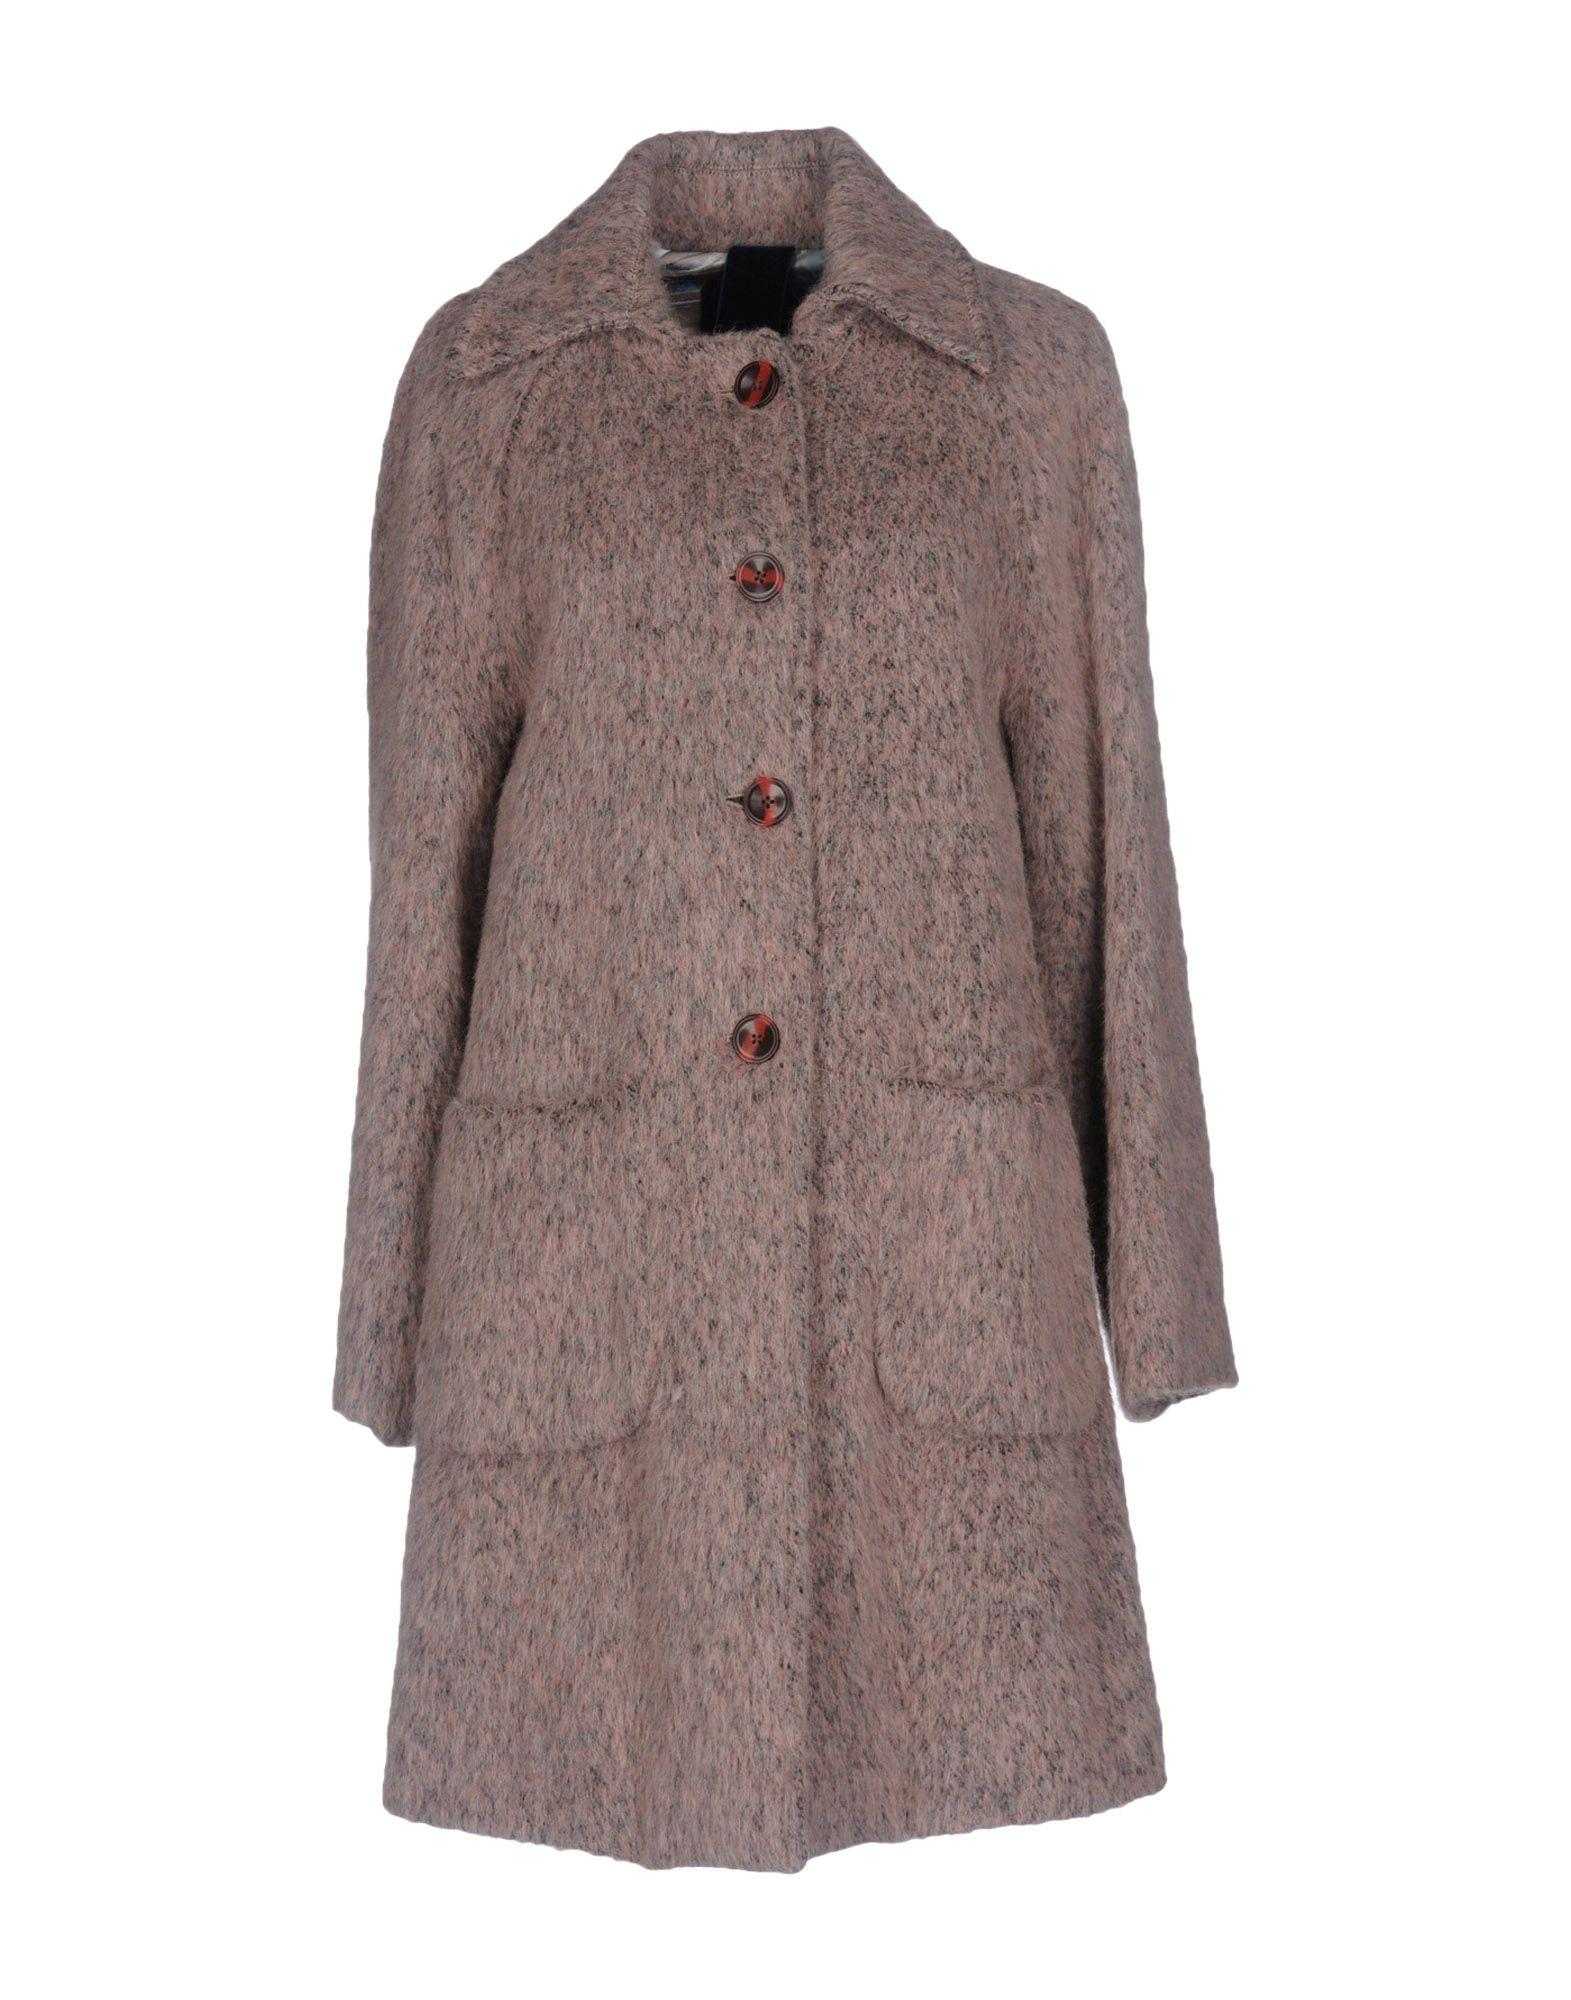 Femme By Michele Rossi Coats In Pink